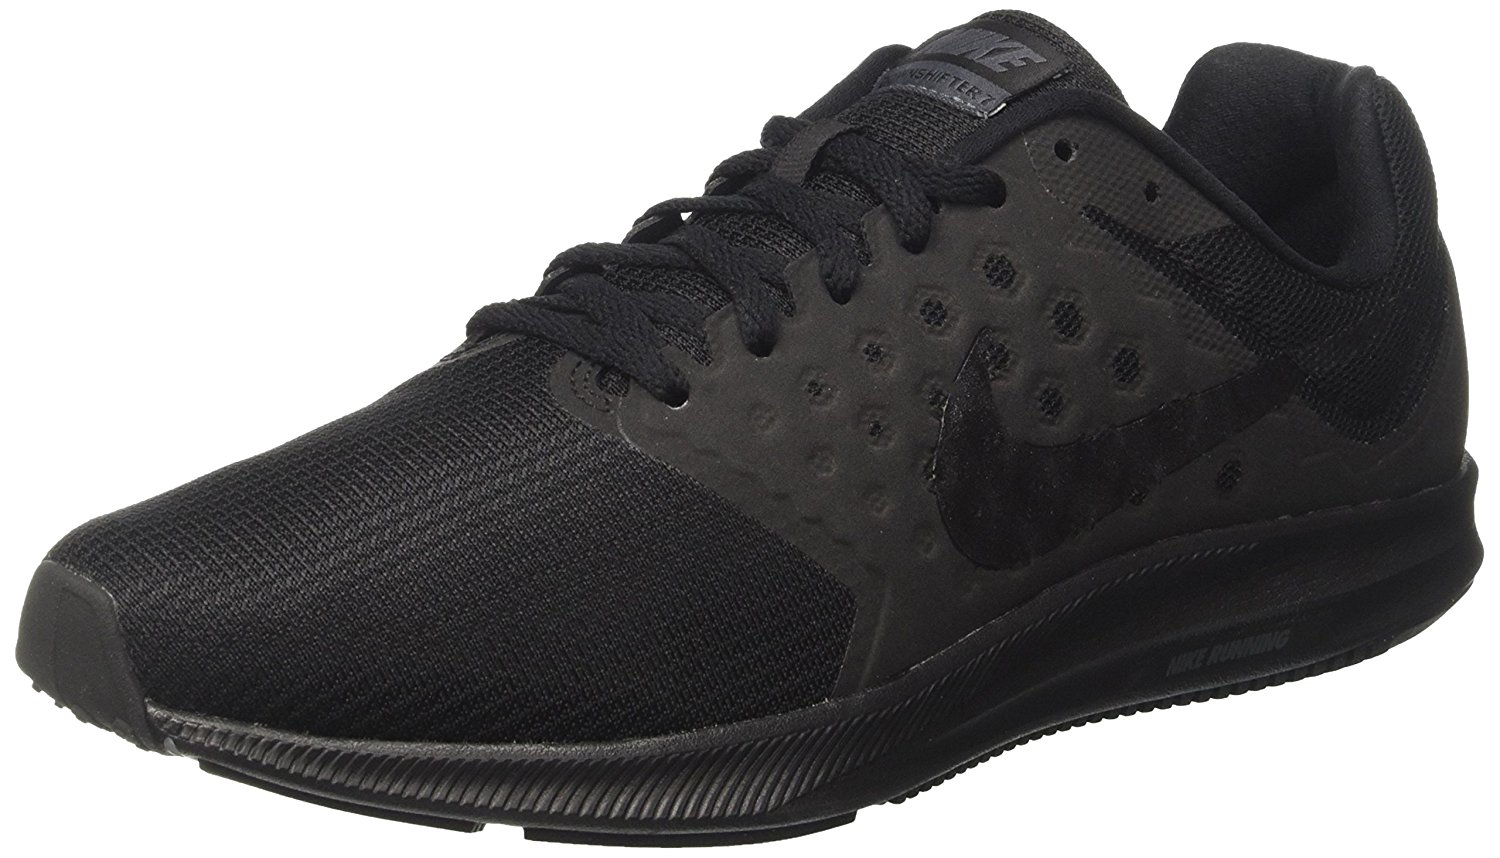 Nike Downshifter 7 Reviewed \u0026 Tested